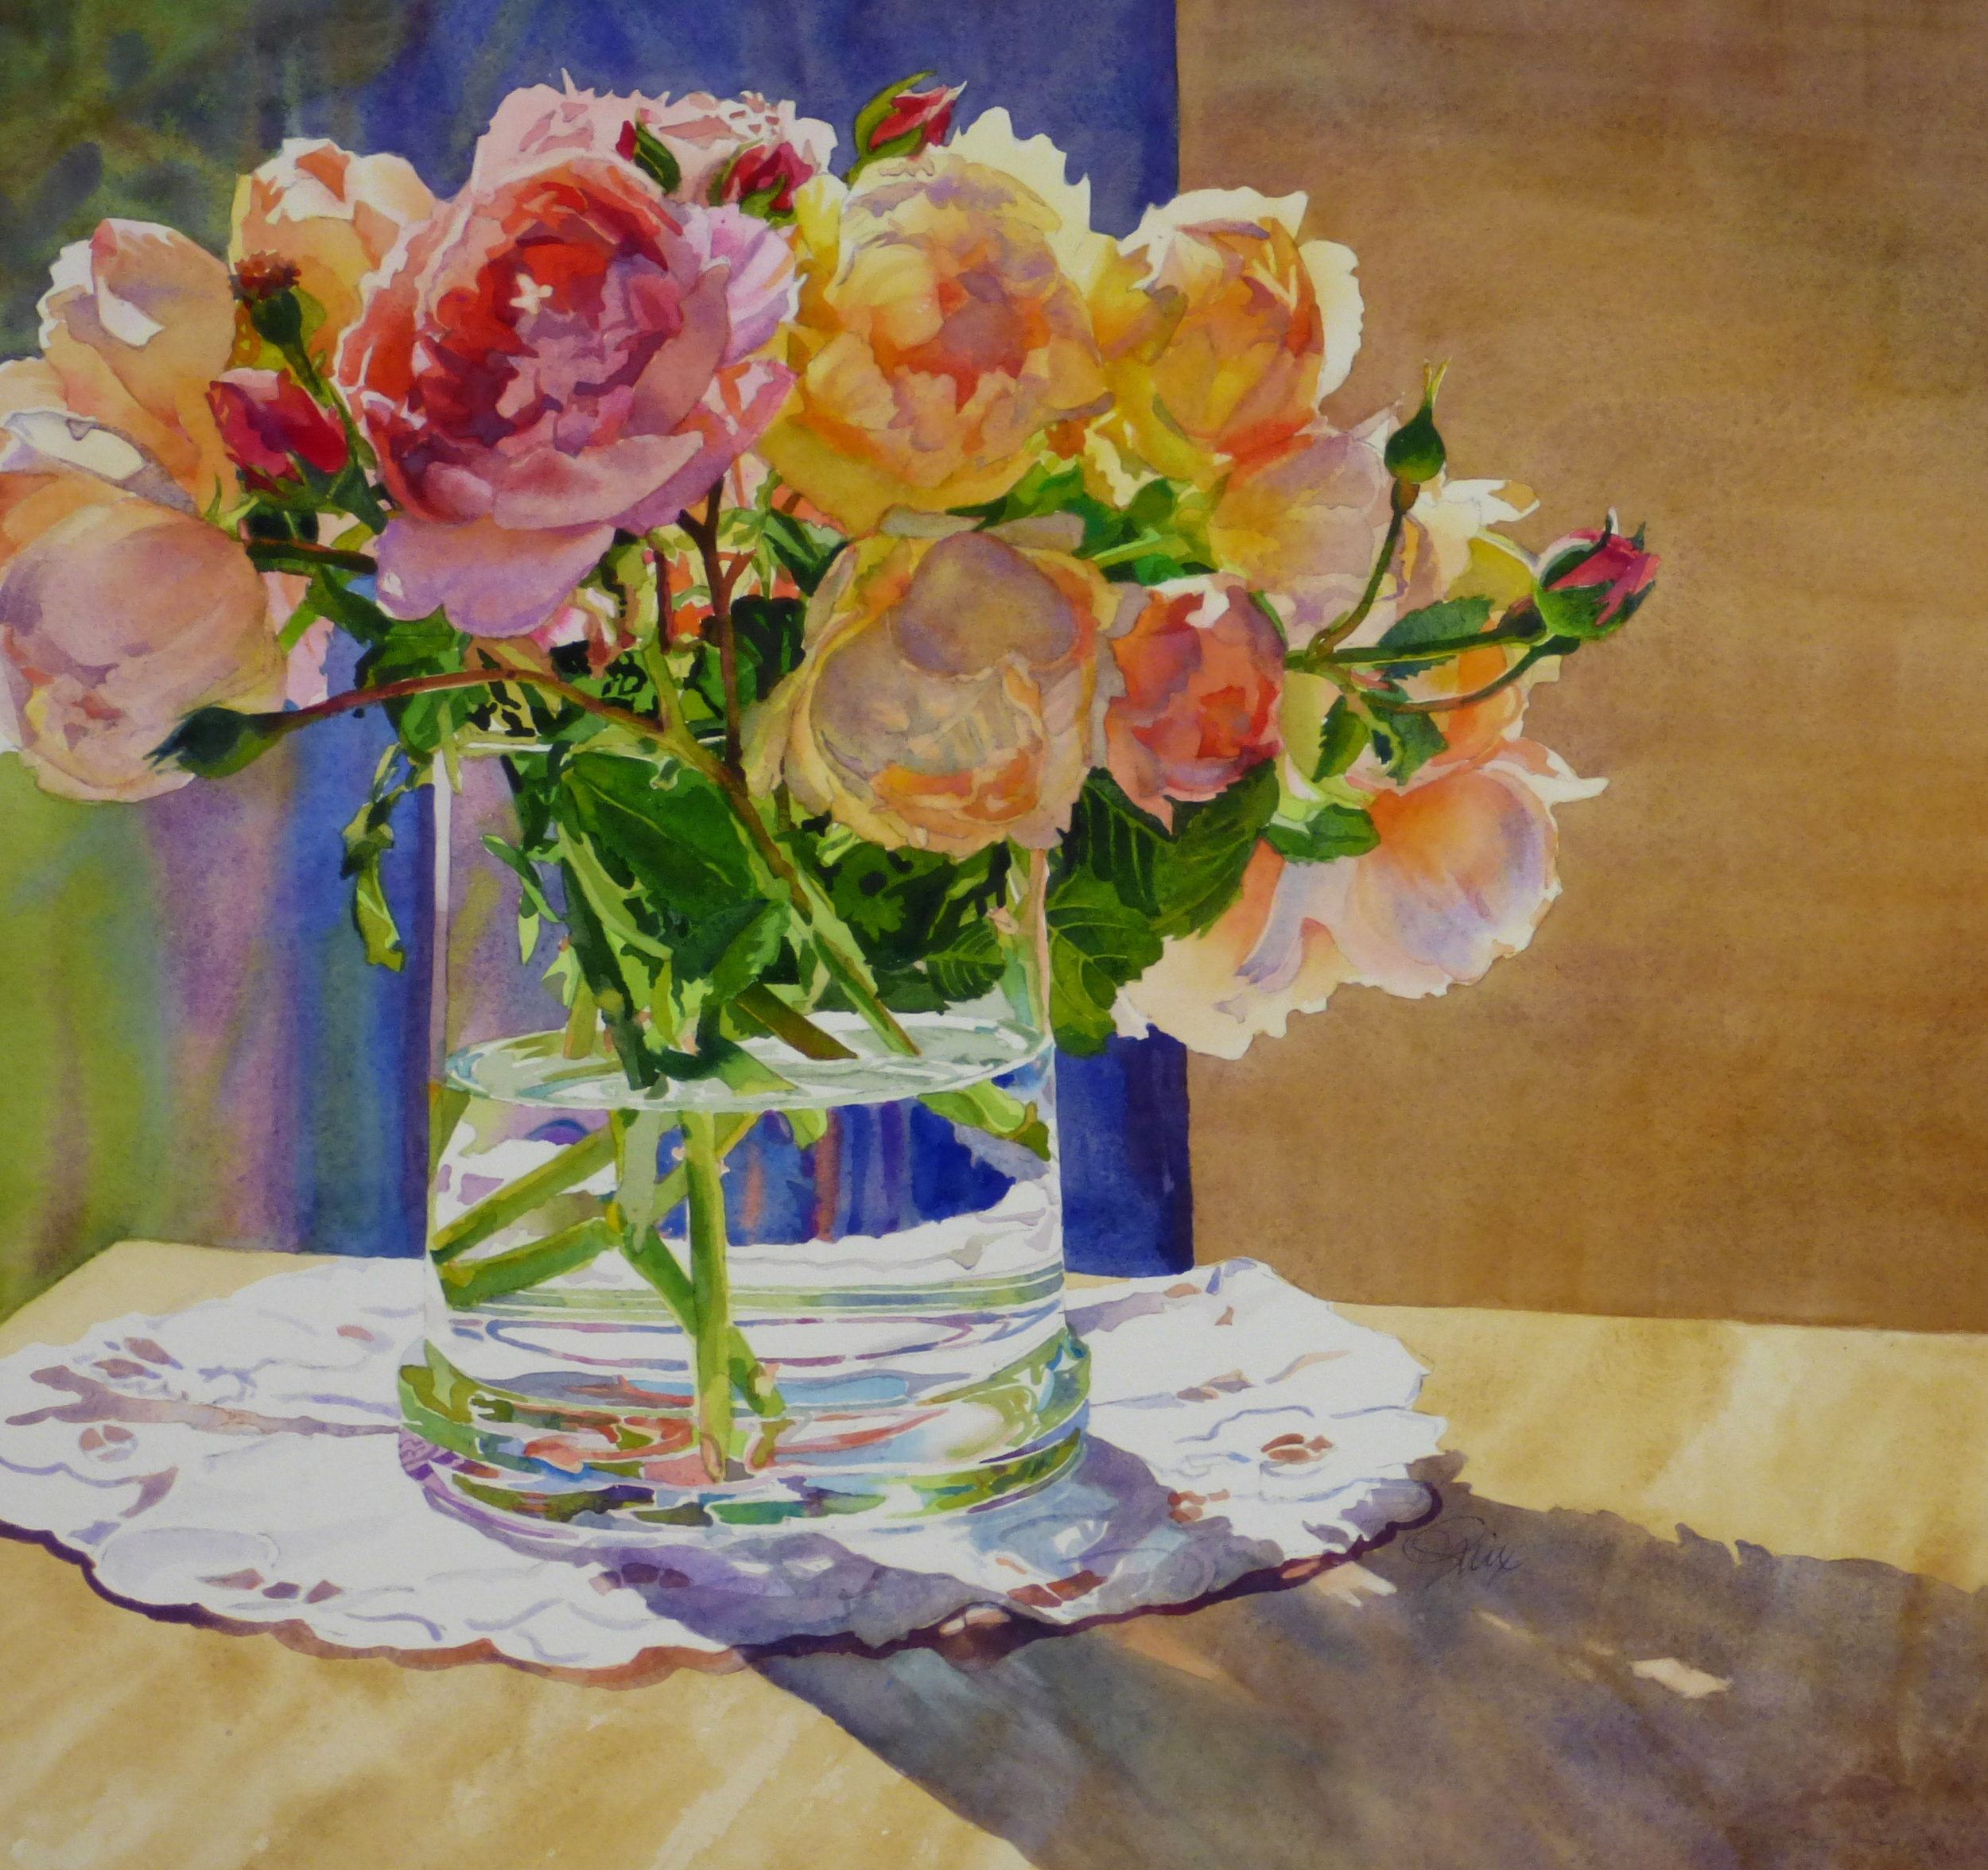 Finally, to increase the contrast with the roses, I darkened the backgrounds, and laid in the darkest darks.